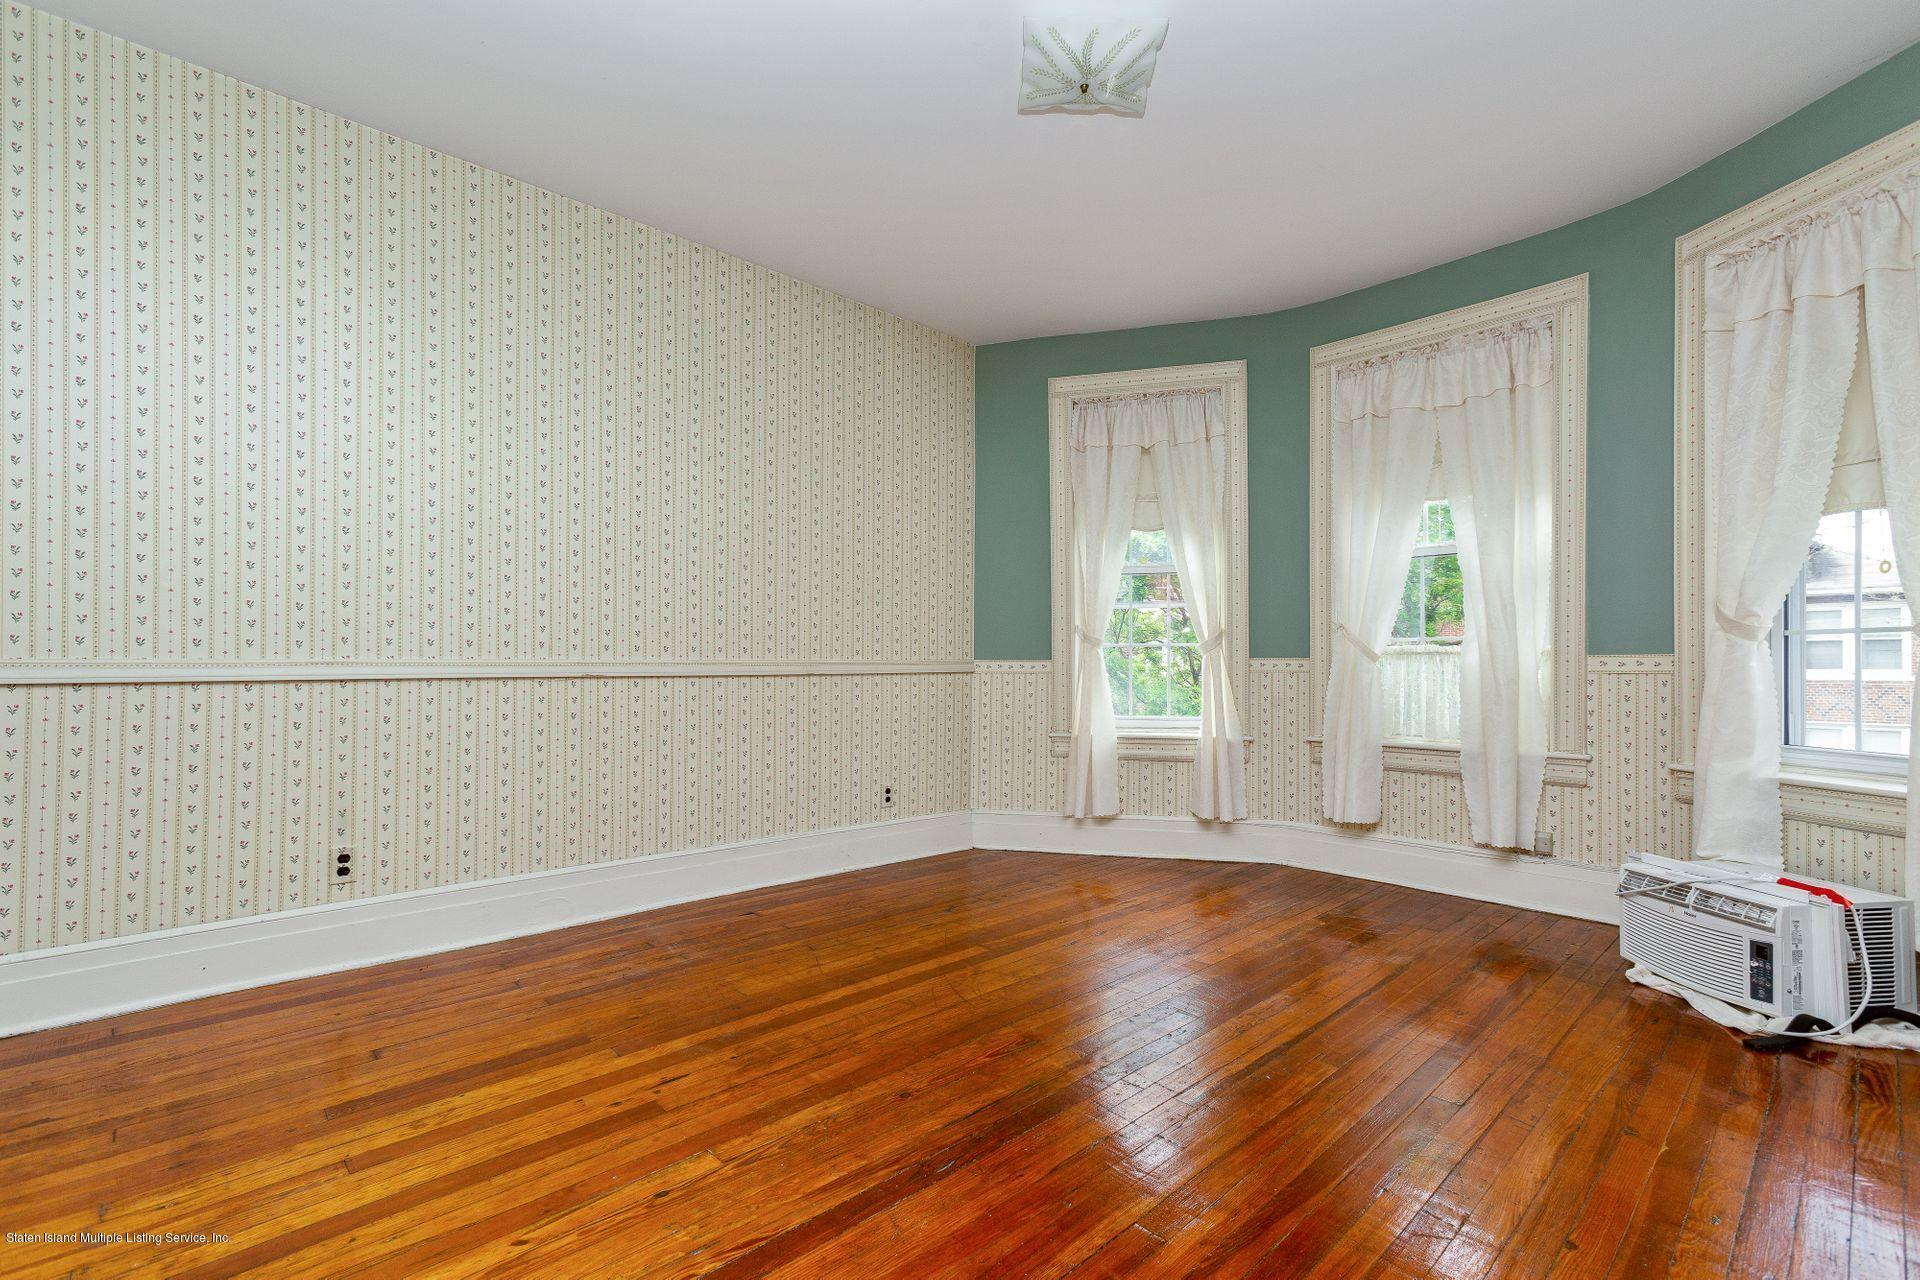 Single Family - Attached 83 Chester Avenue  Brooklyn, NY 11218, MLS-1134106-10